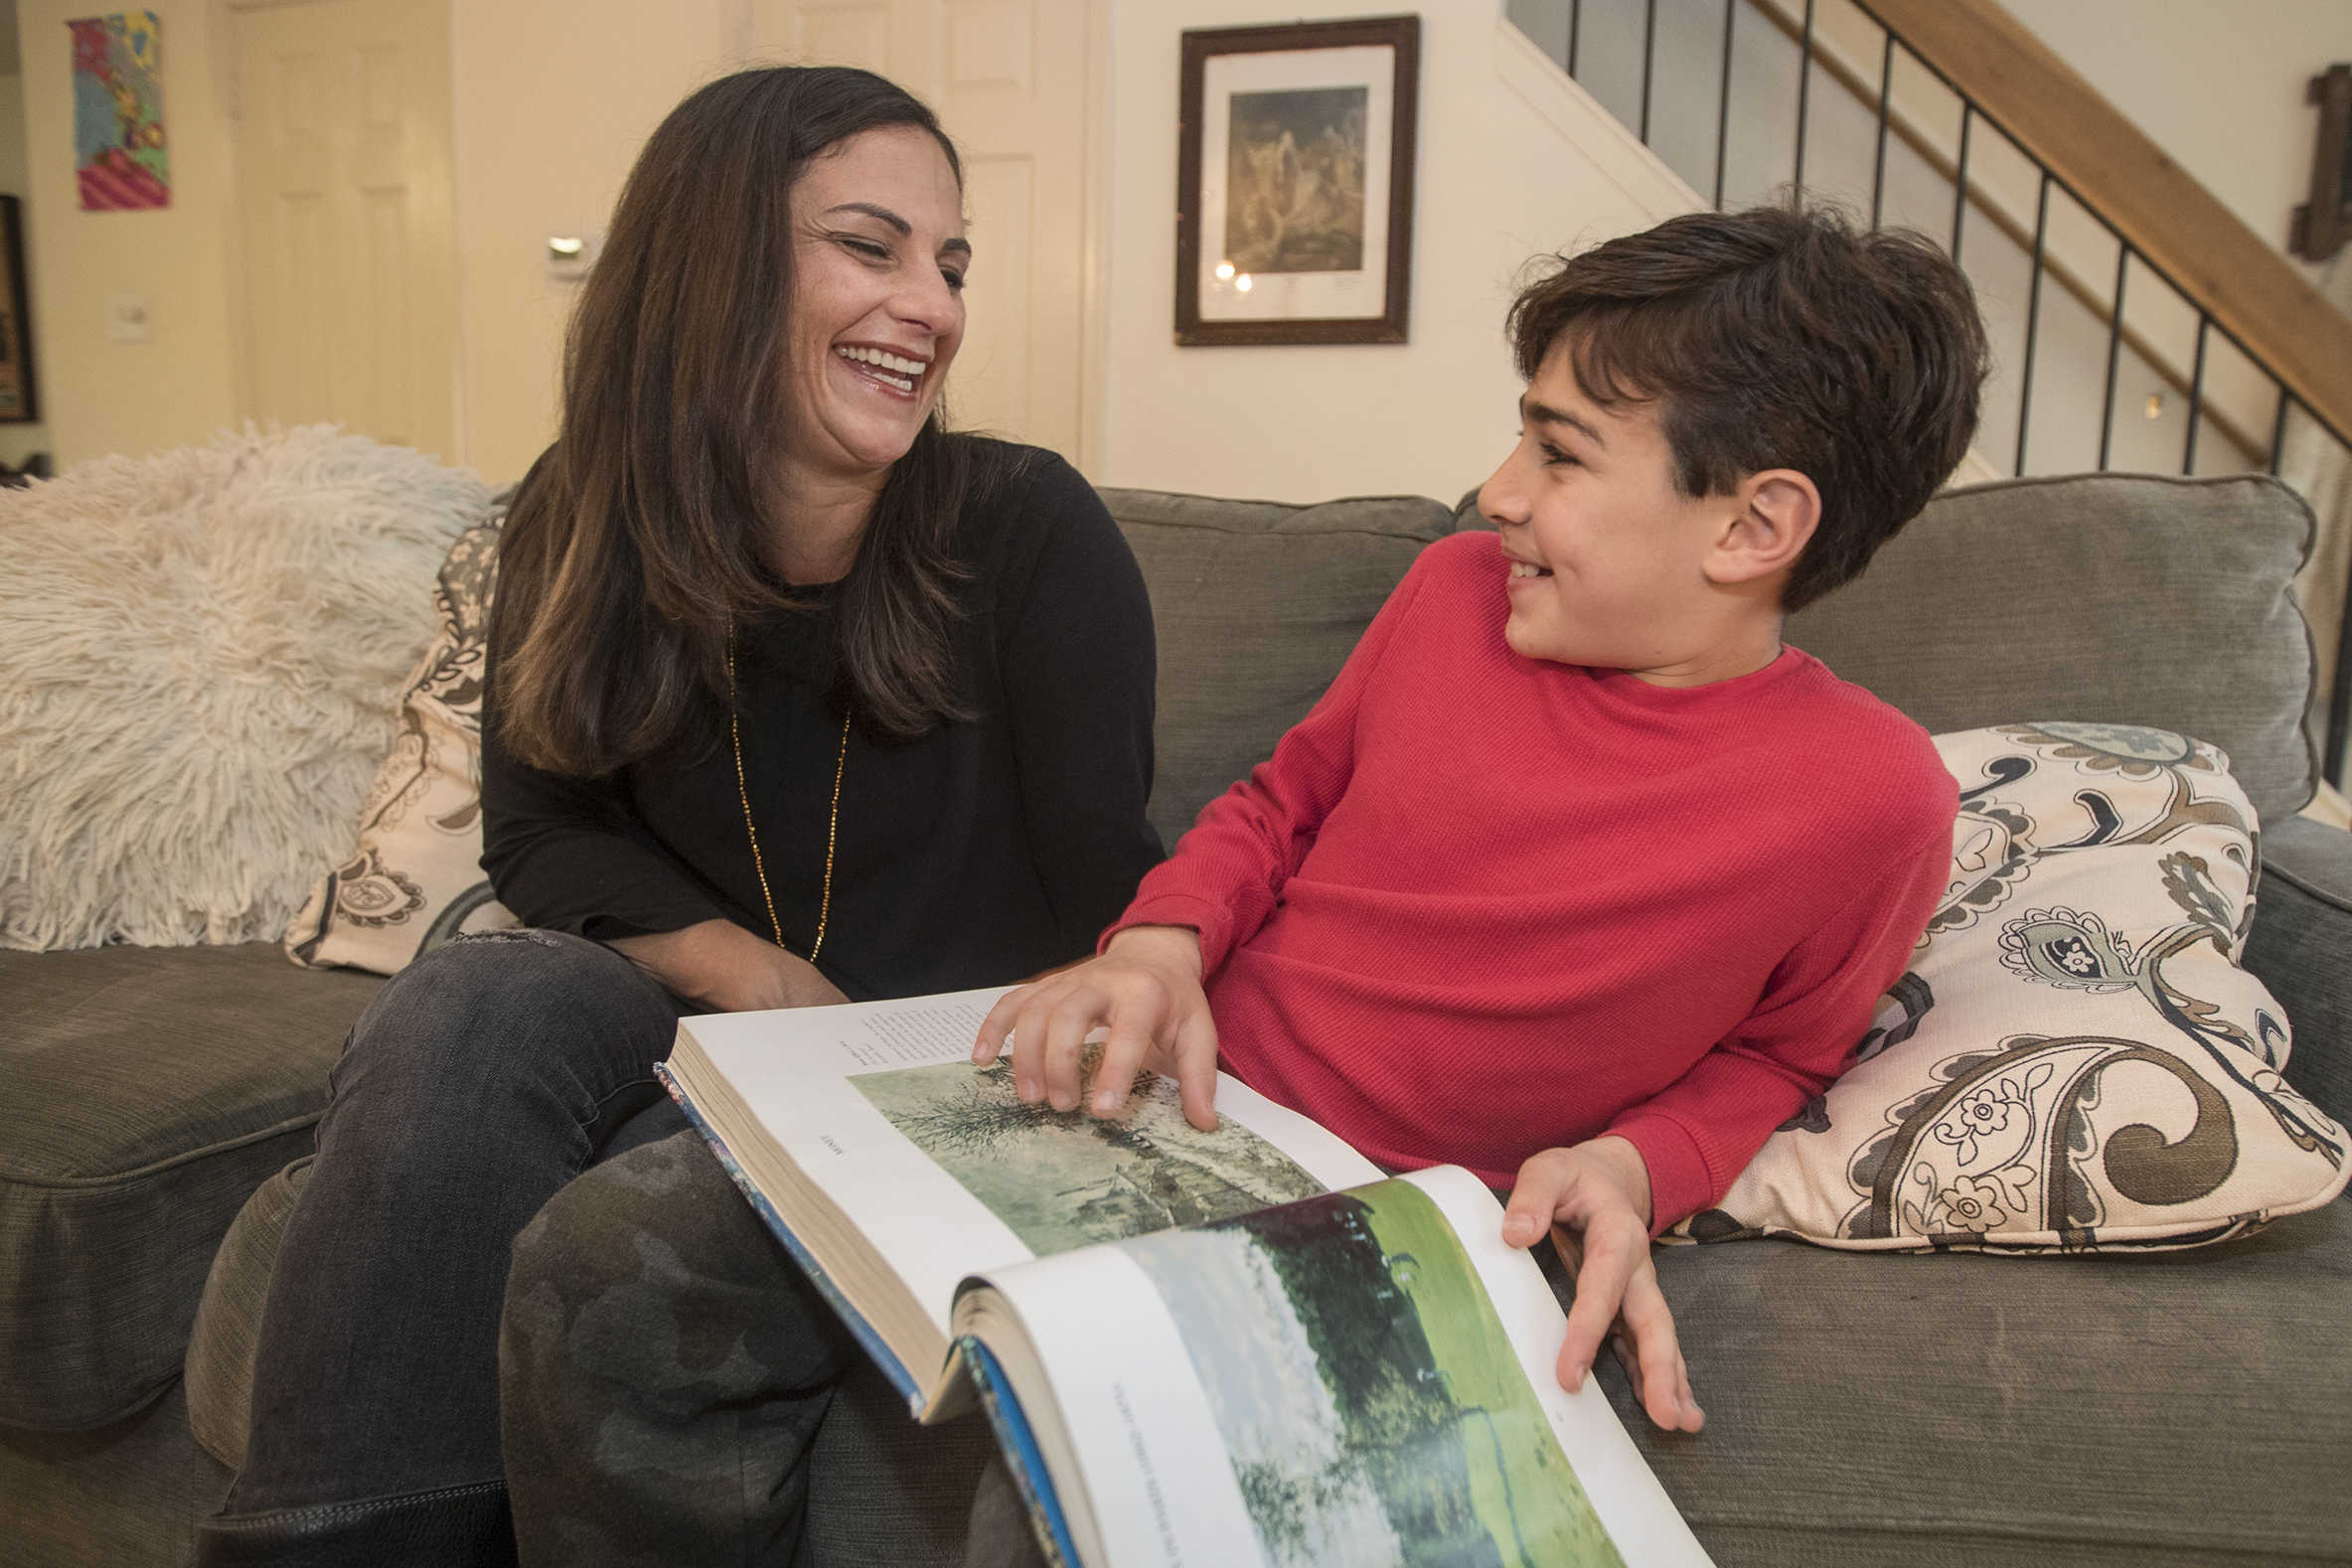 Erica Daniels shares a funny moment with her 12-year-old son, Leo, as they look through a book about Monet, Leo's favorite artist.